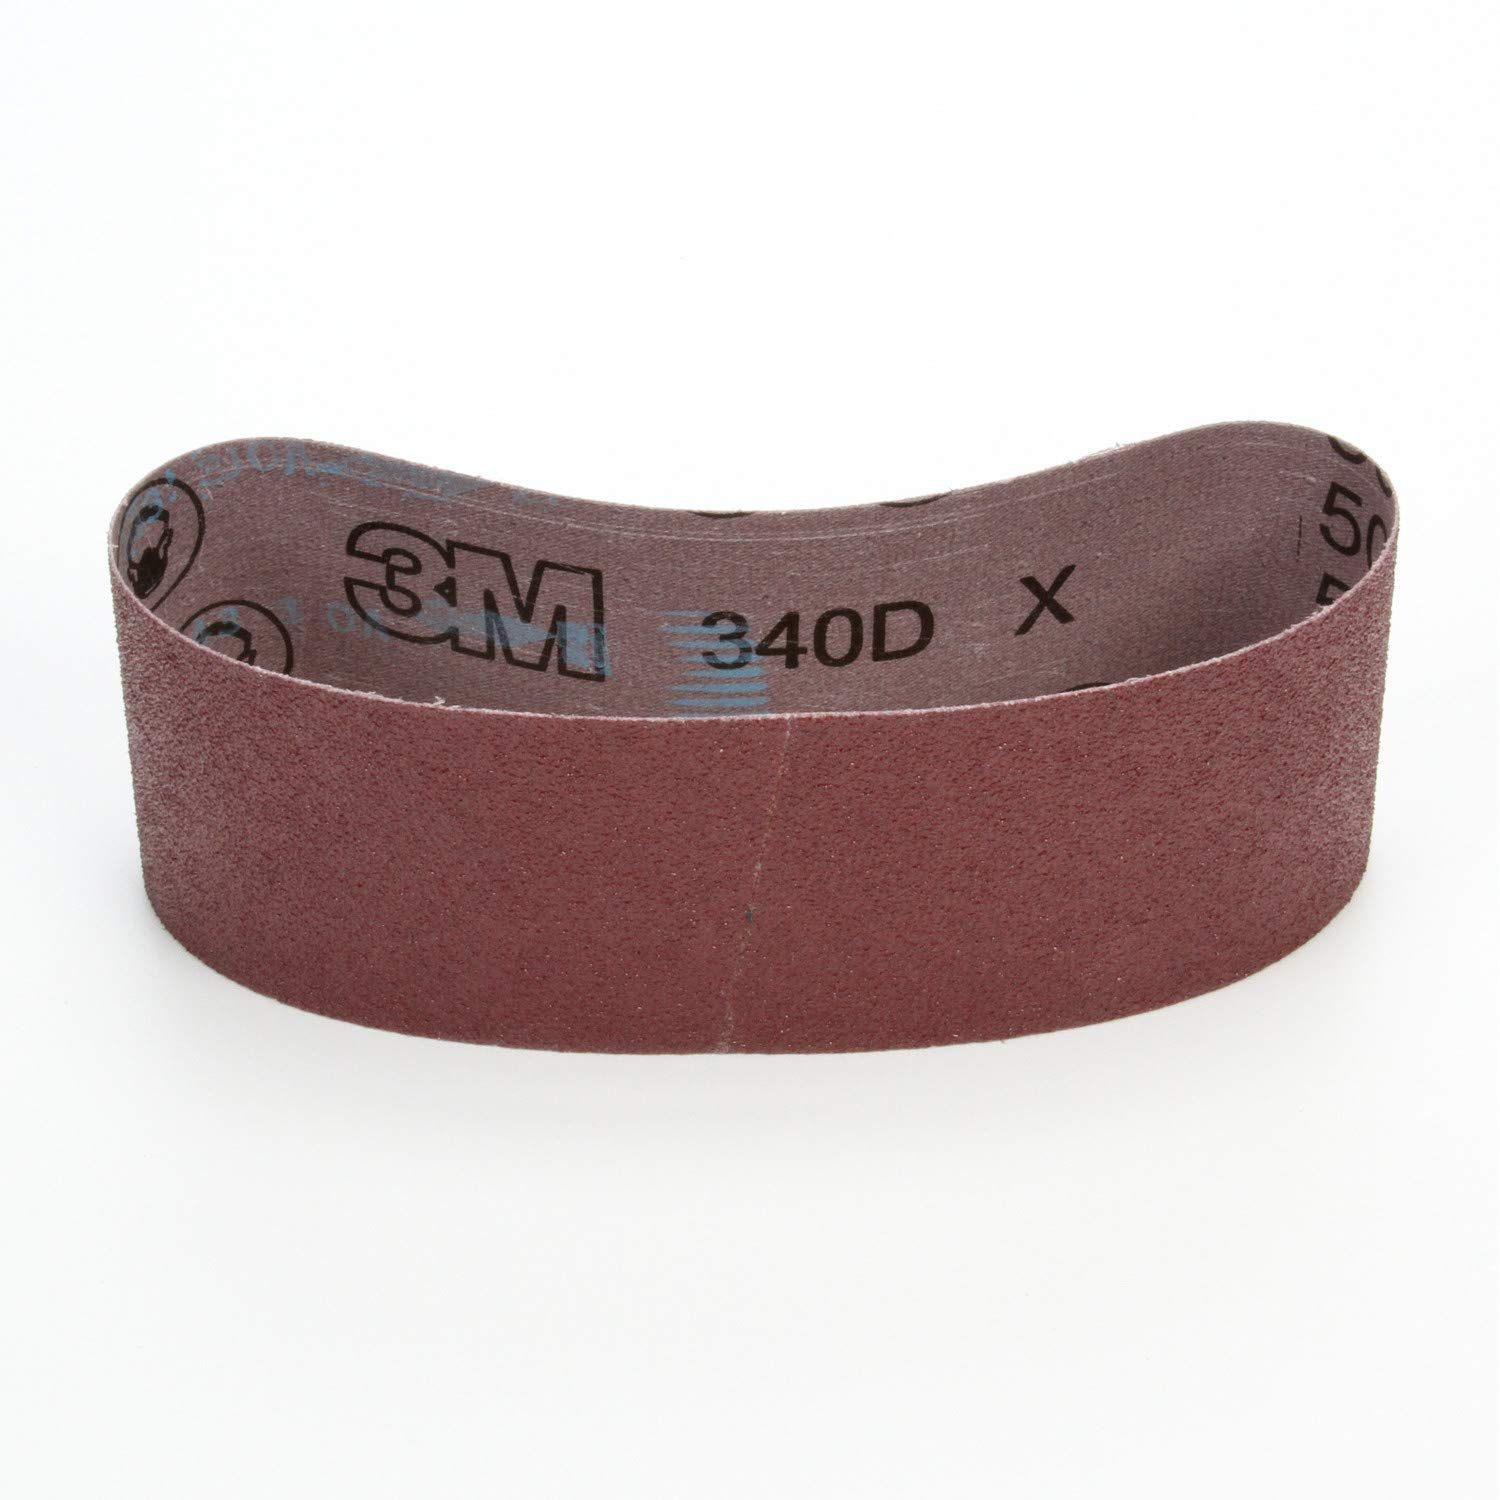 3M Cloth Belt 340D, 3 in x 21 in 50 X-weight, 25 per case